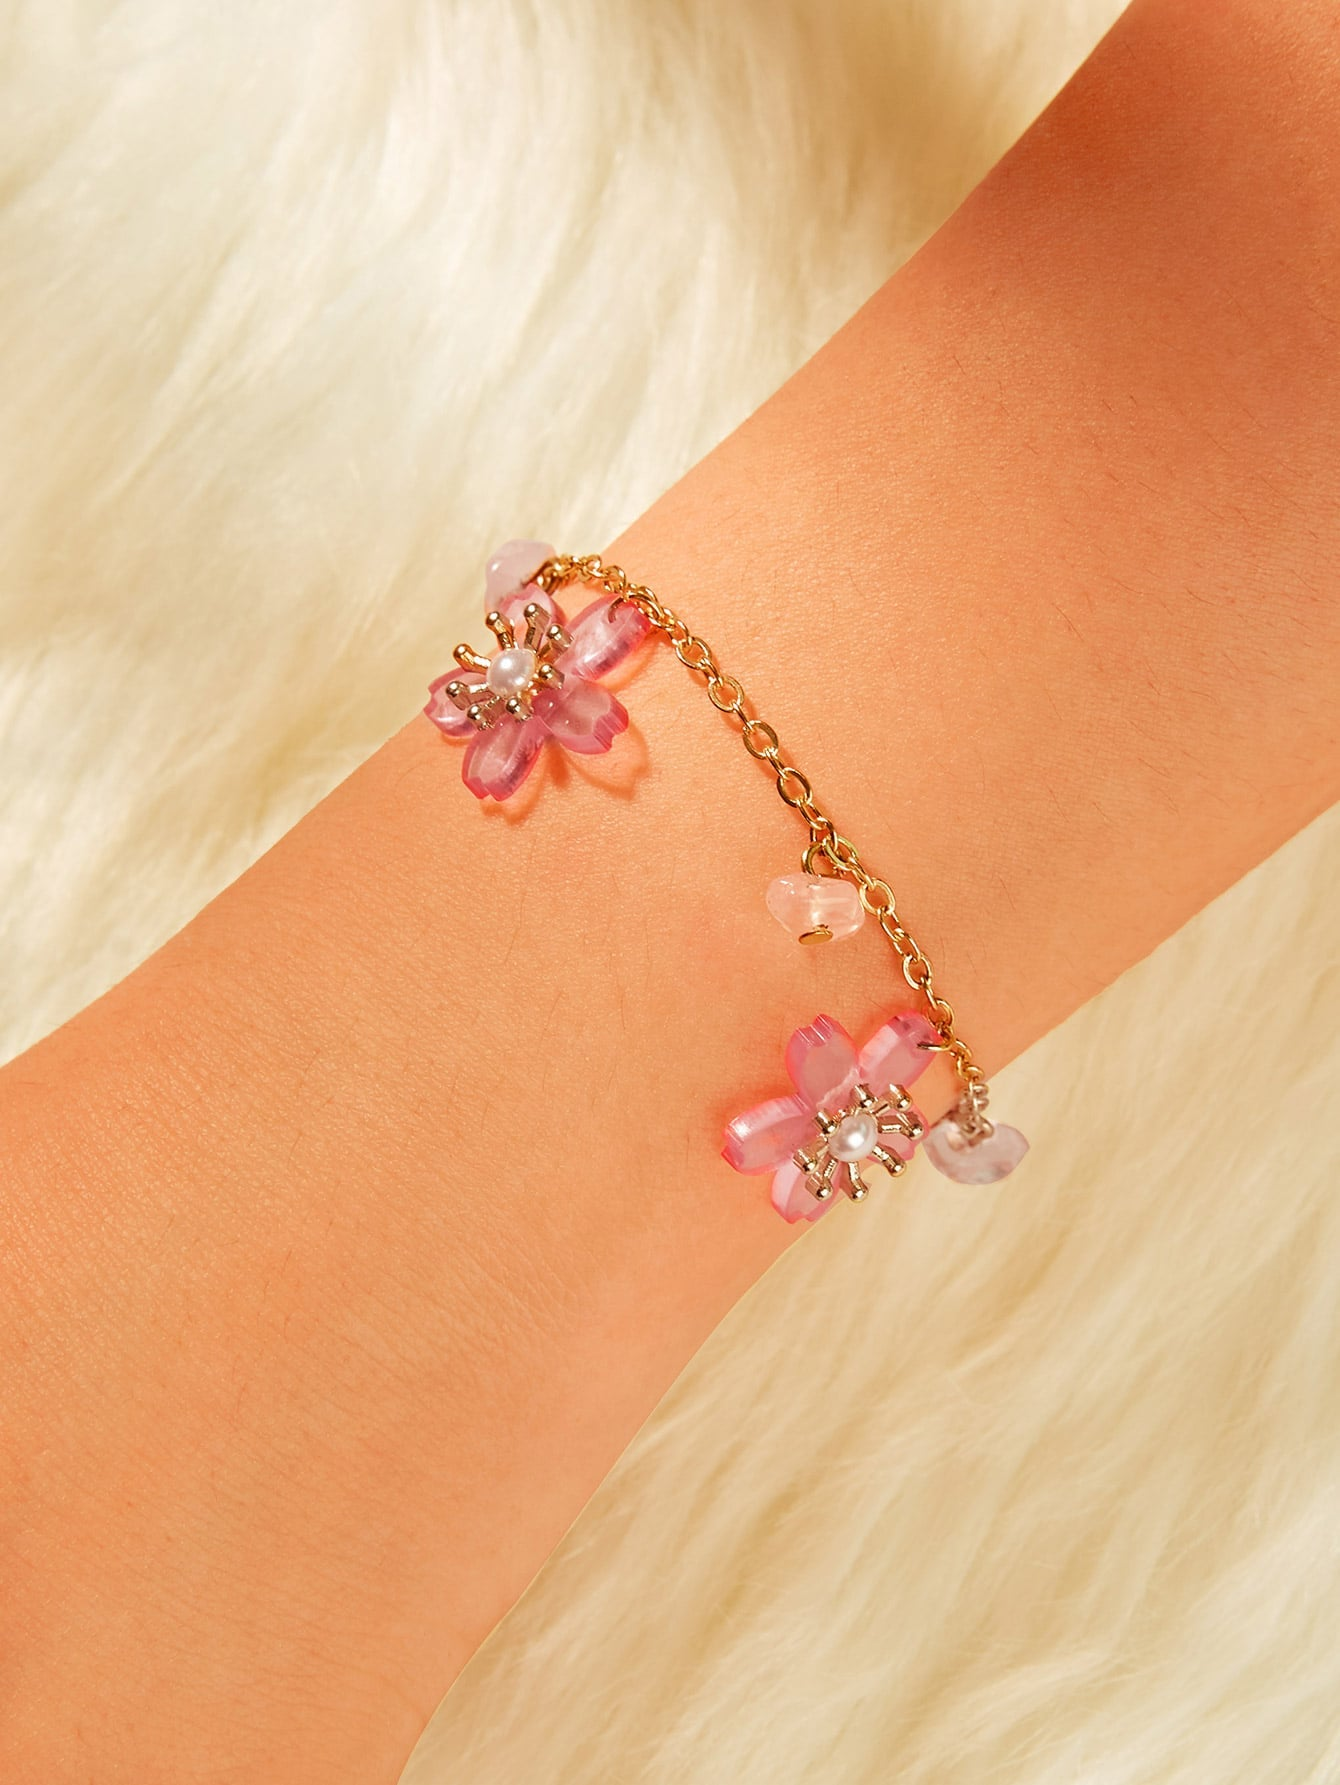 Pink Floral Charm With Pearls Golden Chain Bracelet 1pc